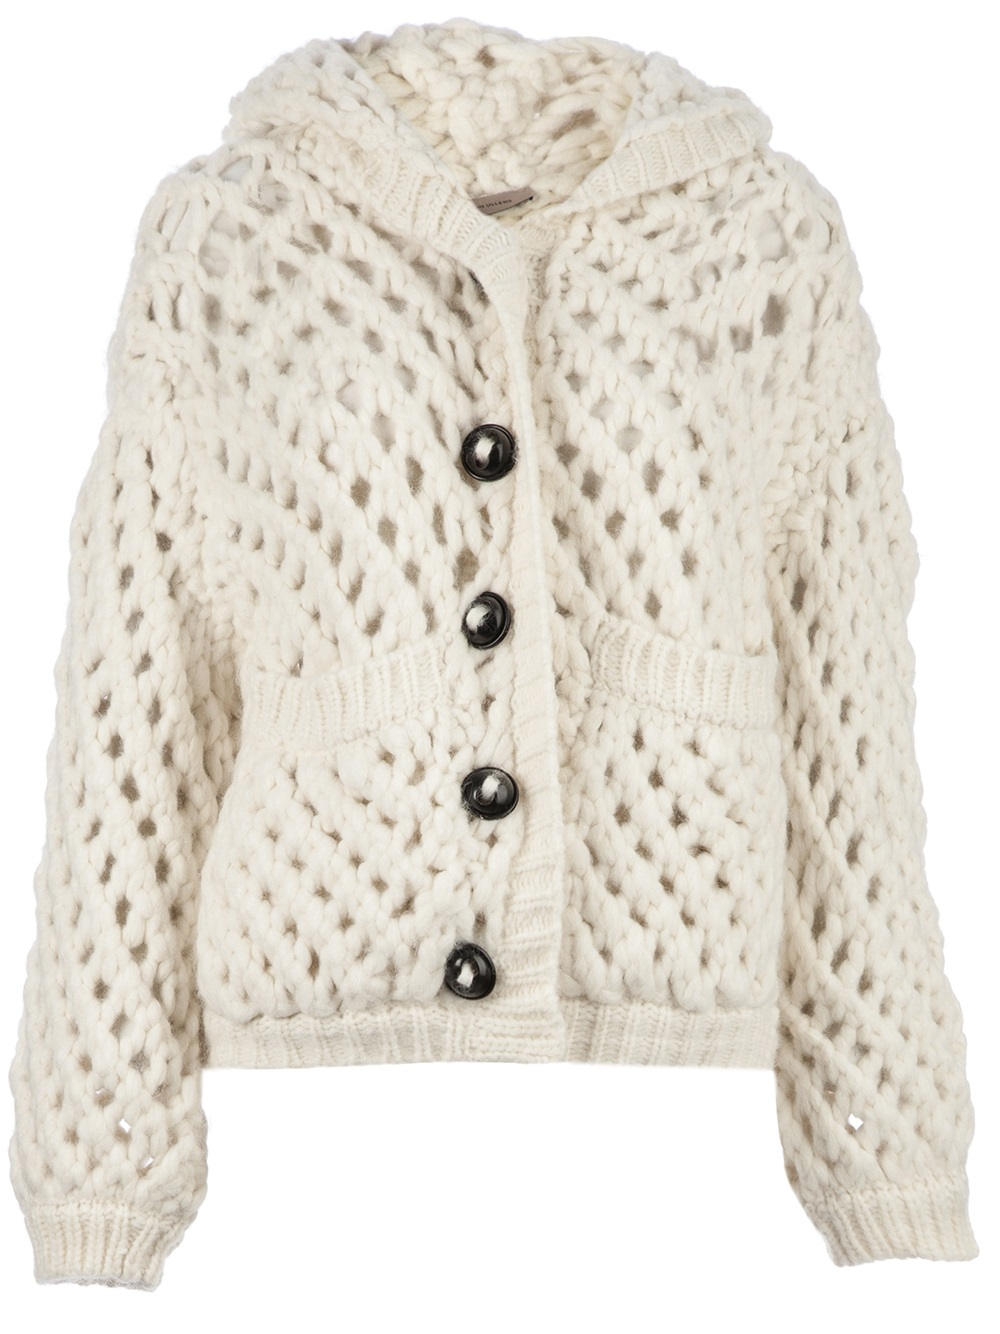 Maison ullens Chunky Knit Cardigan in White | Lyst